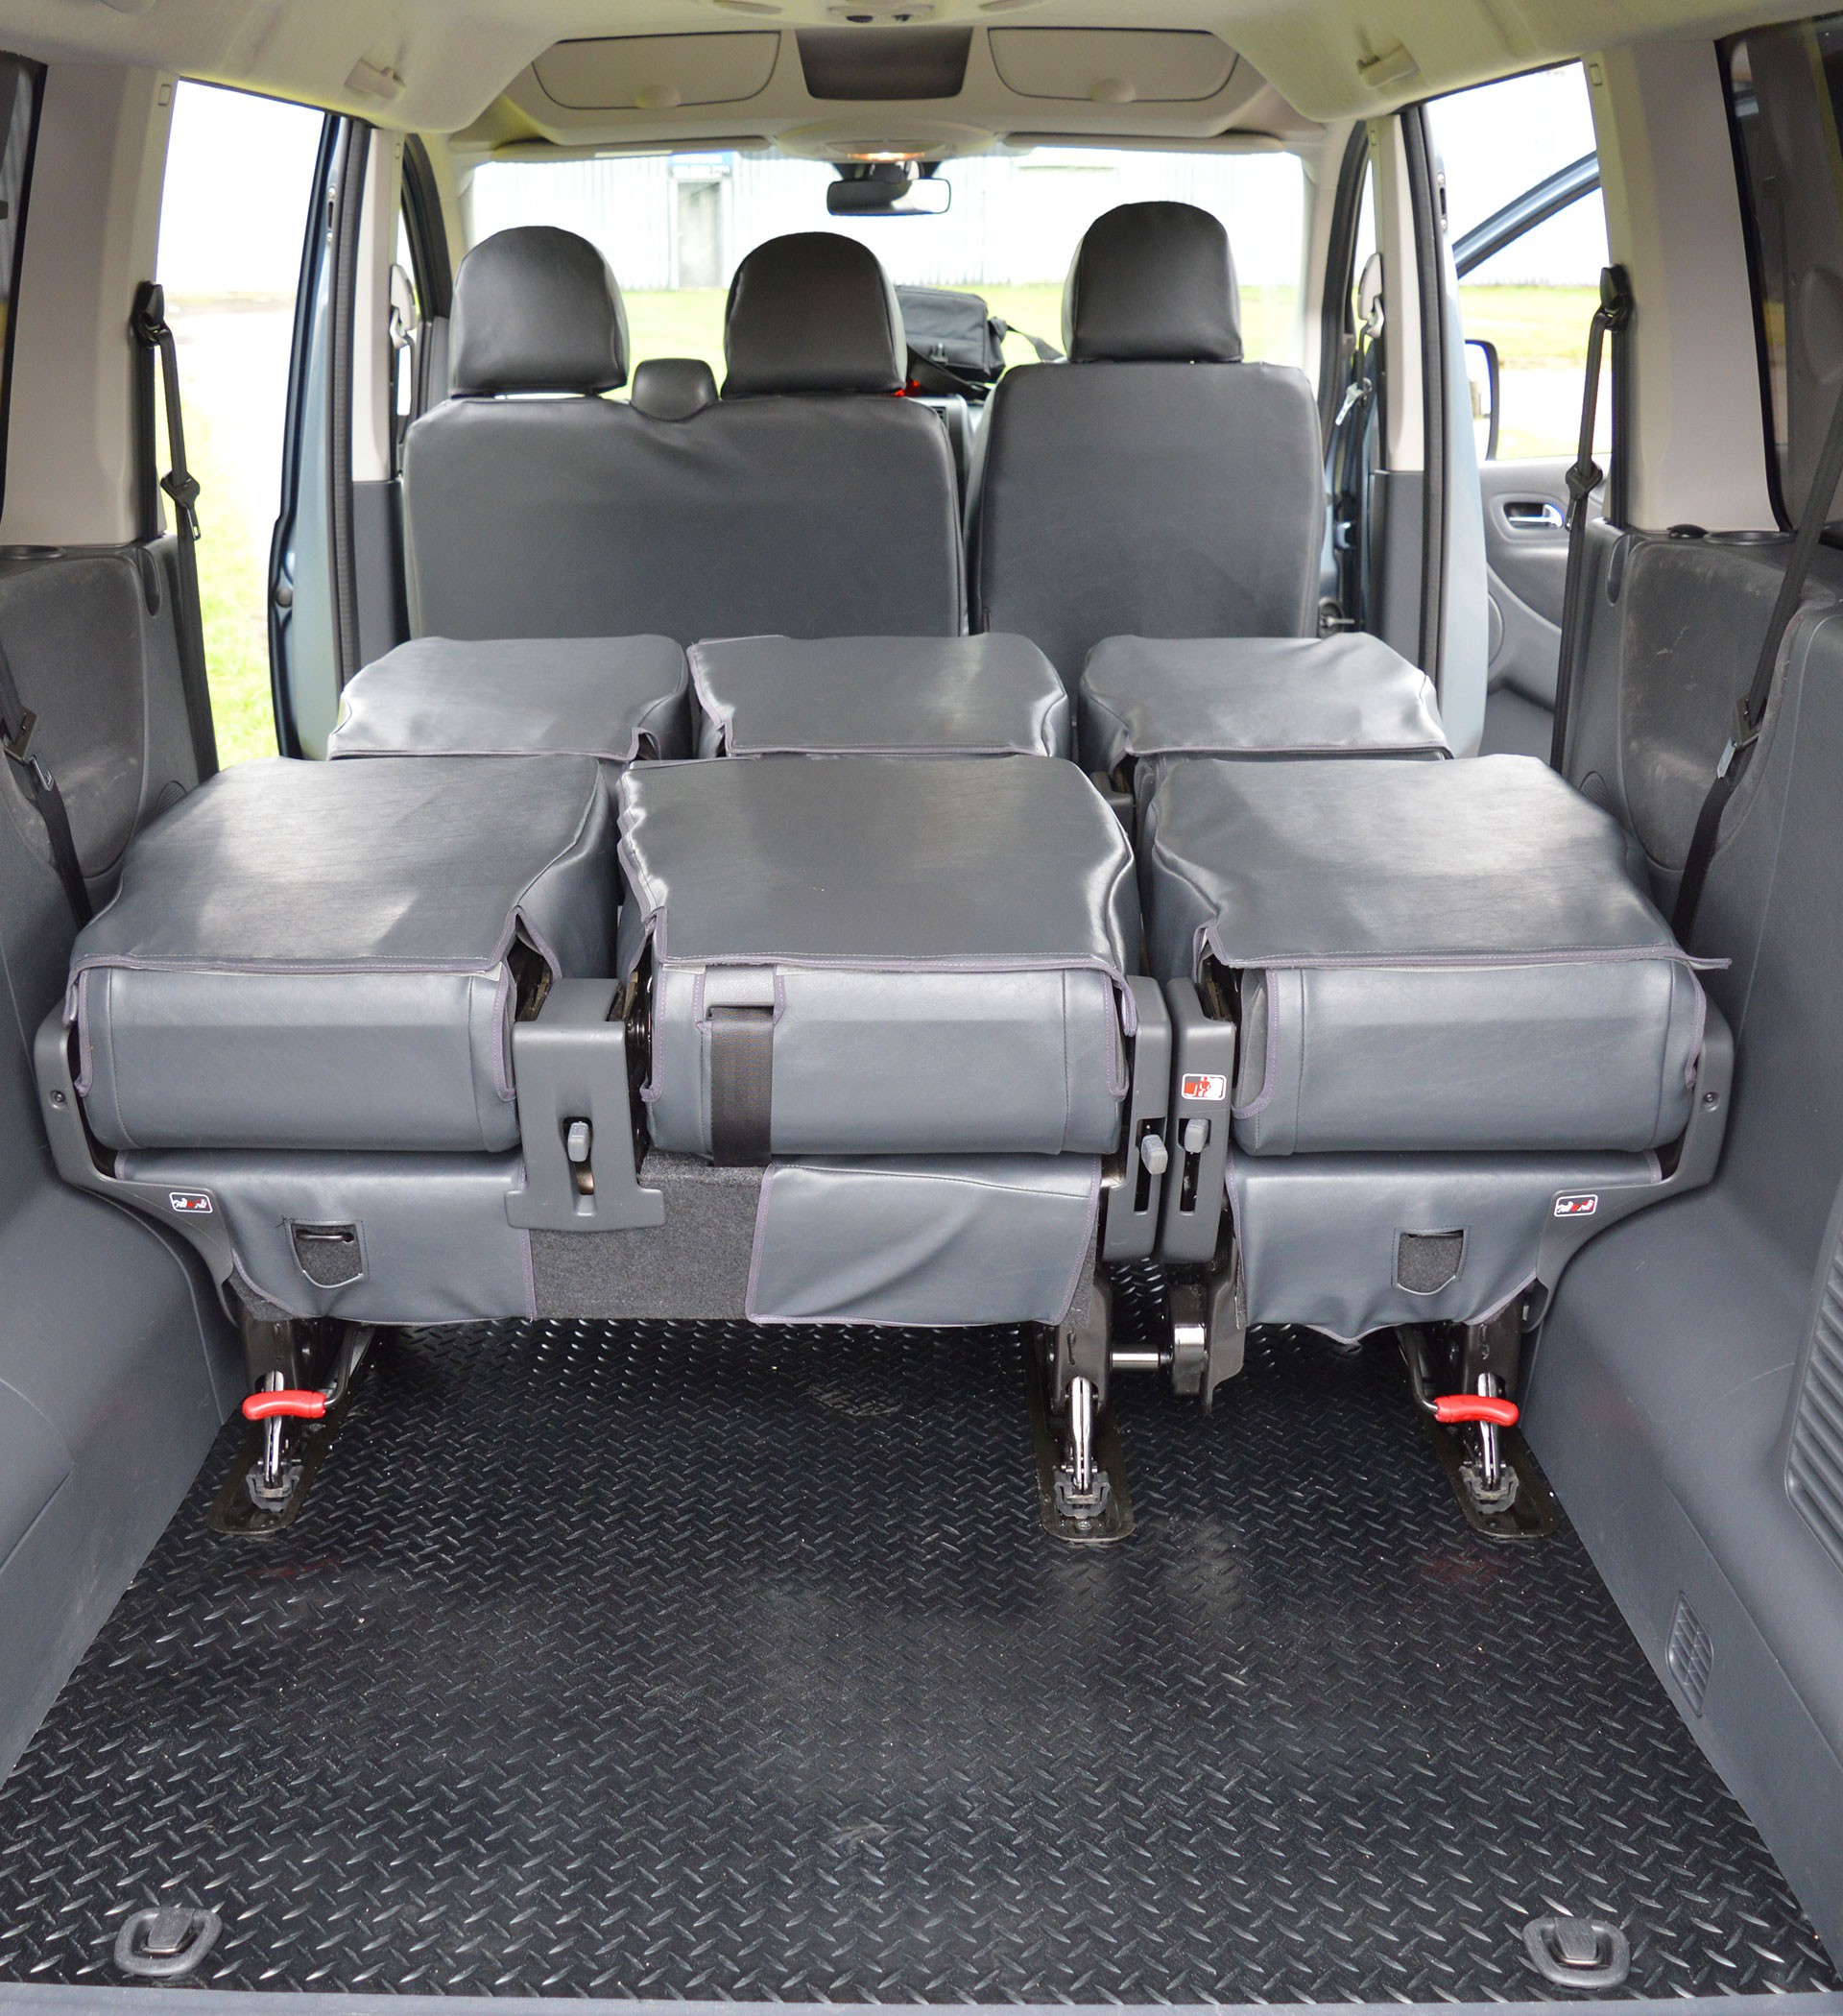 What To Do With Used Car Seats >> Peugeot Expert 9 Seater Waterproof Tailored Van Seat Covers